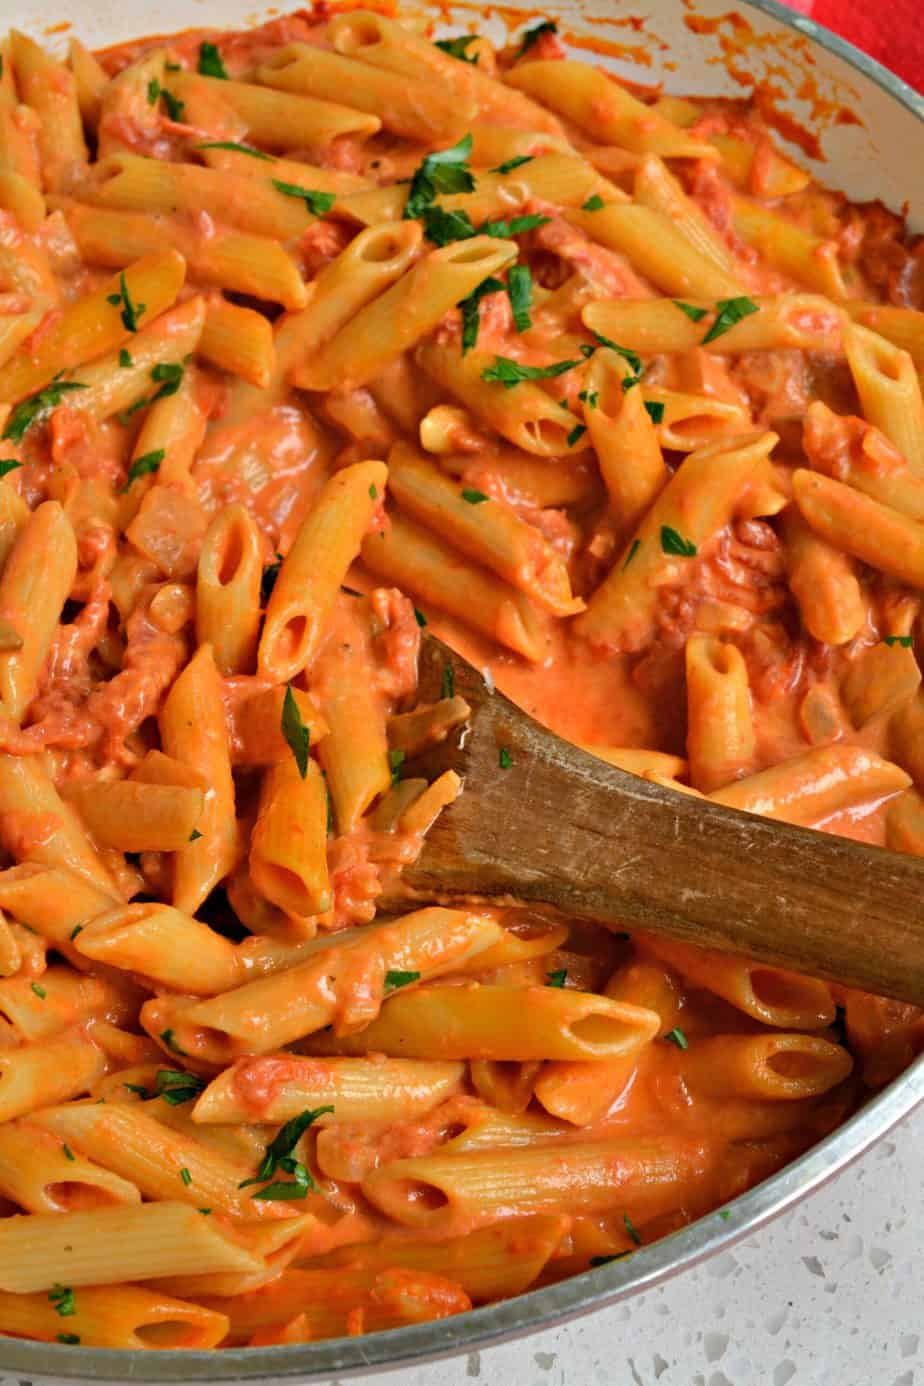 With easy and delectable recipes like this Penne alla Vodka you too can make restaurant quality pasta at home.